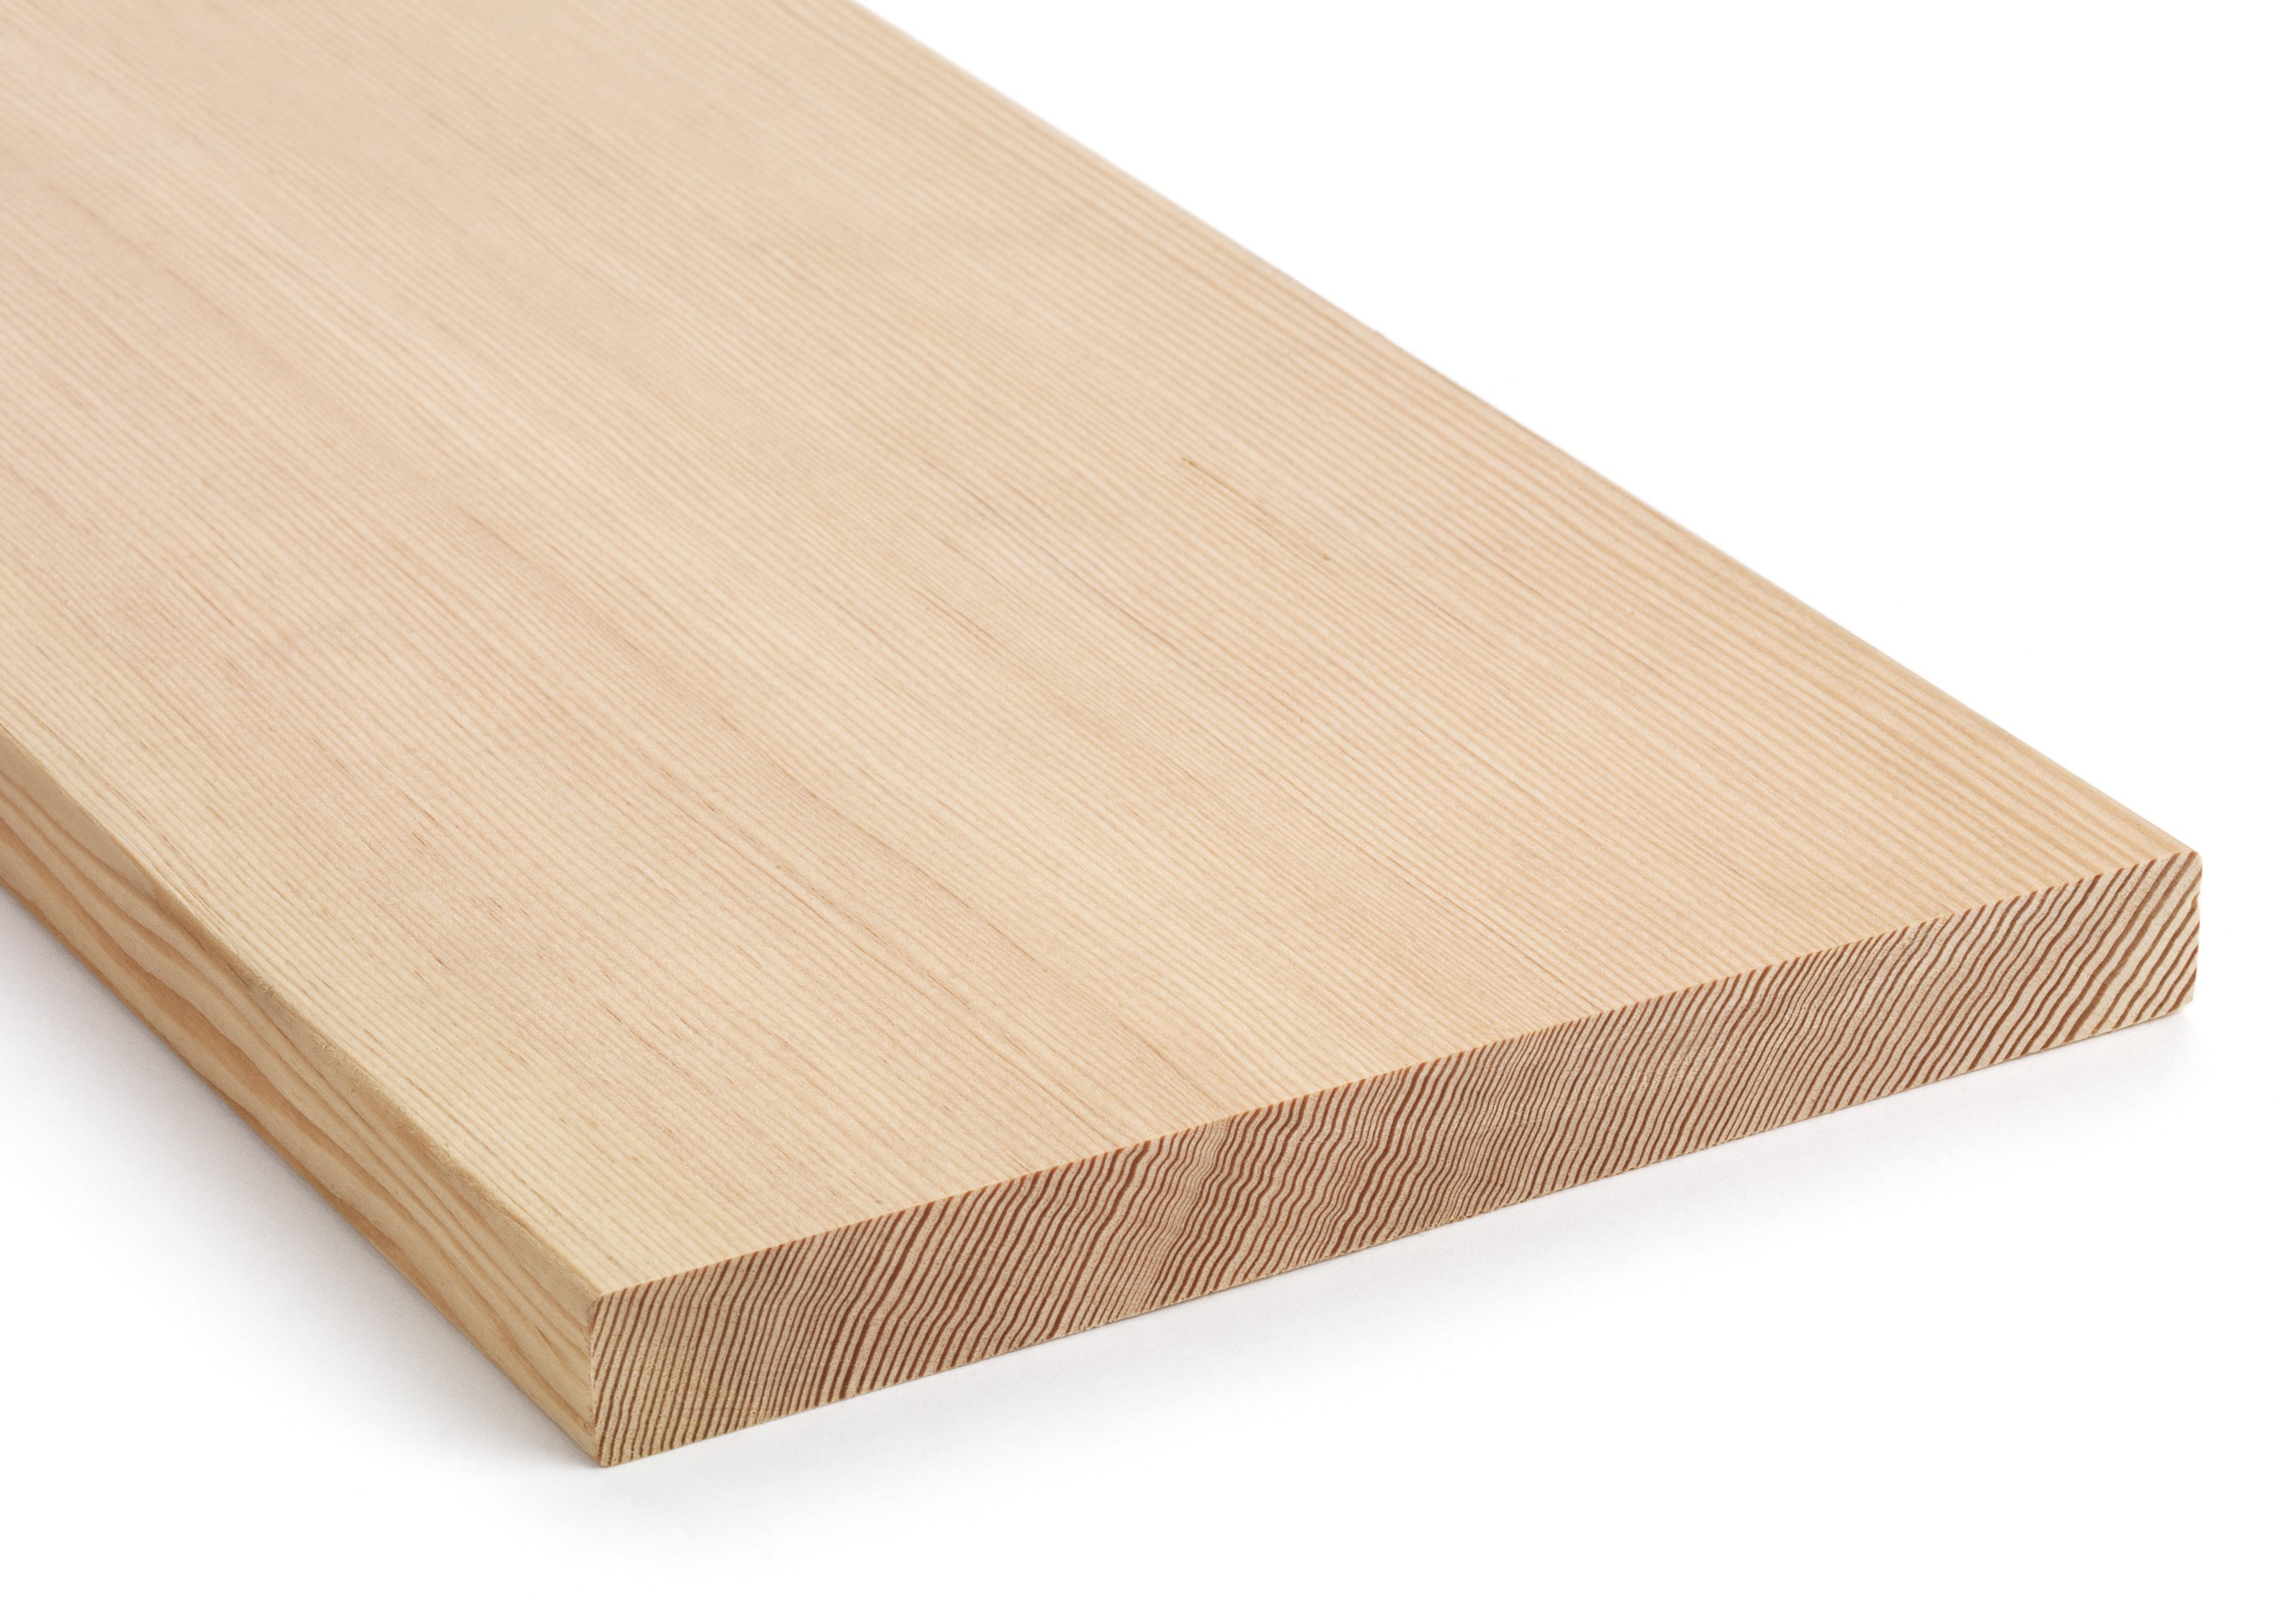 CVG 1 x 8 Douglas Fir Trim